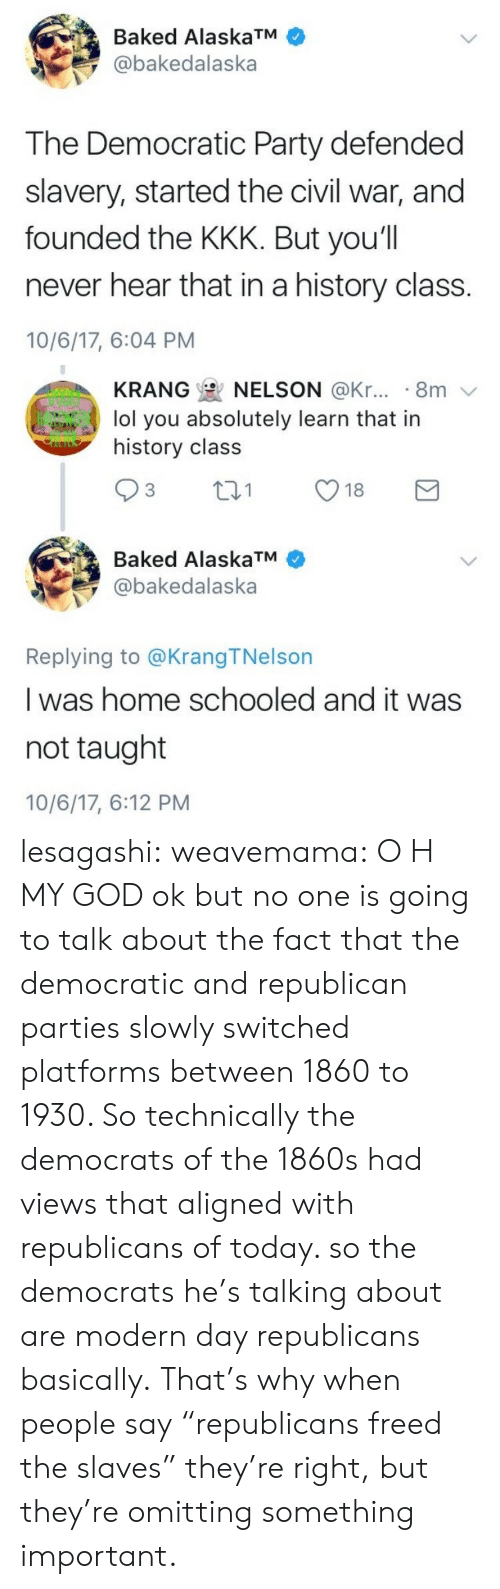 "the civil war: Baked AlaskaTM  @bakedalaska  The Democratic Party defended  slavery, started the civil war, and  founded the KKK. But you'll  never hear that in a history class.  10/6/17, 6:04 PM   KRANG  NELSON @Kr... . 8m  lol you absolutely learn that in  history class  Baked AlaskaTM  @bakedalaska  Replying to @KrangTNelson  I was home schooled and it was  not taught  10/6/17, 6:12 PM lesagashi:  weavemama: O H MY GOD ok but no one is going to talk about the fact that the democratic and republican parties slowly switched platforms between 1860 to 1930. So technically the democrats of the 1860s had views that aligned with republicans of today. so the democrats he's talking about are modern day republicans basically. That's why when people say ""republicans freed the slaves"" they're right, but they're omitting something important."